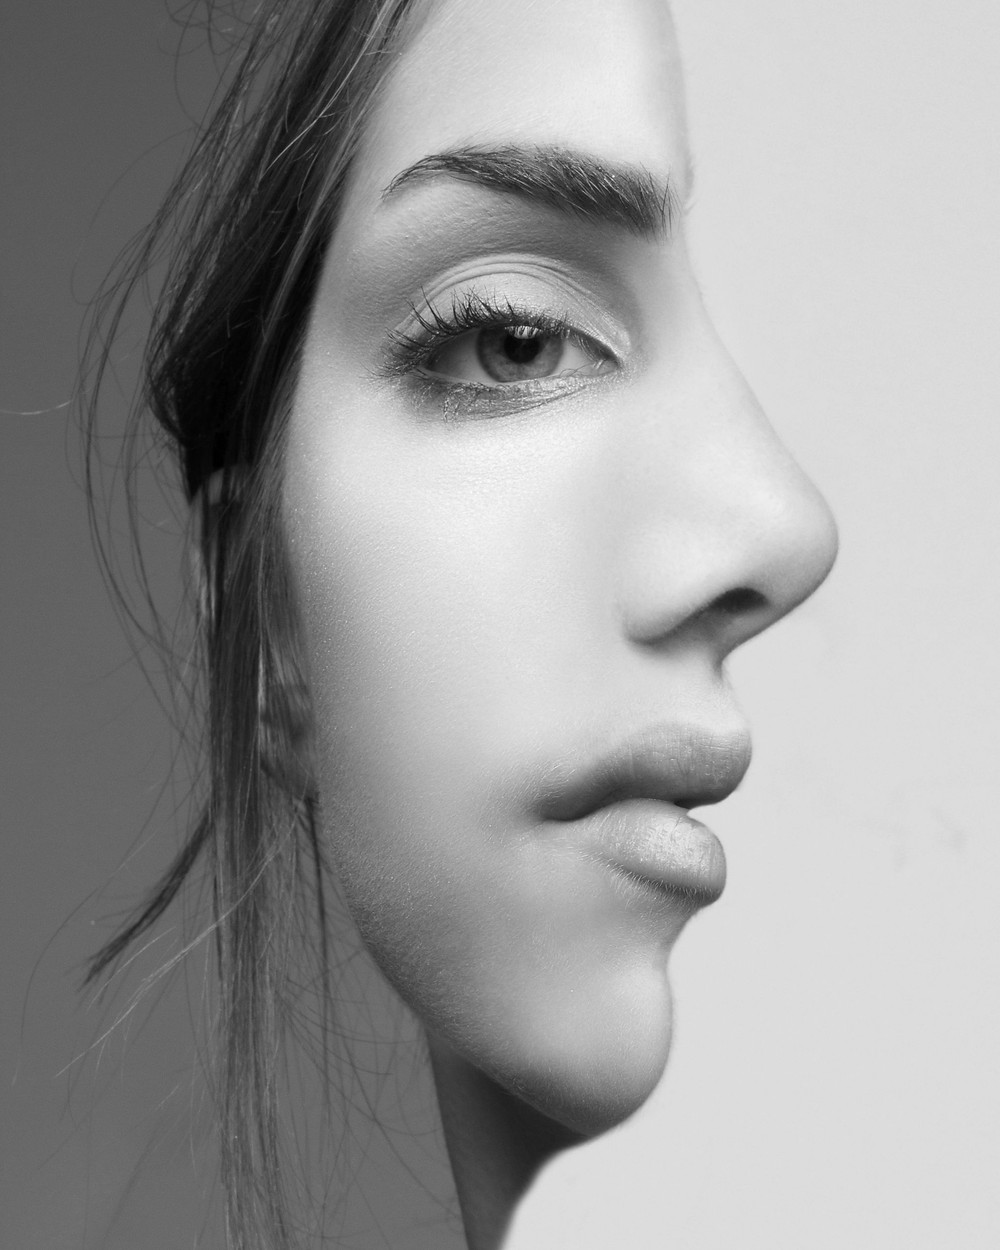 First Person Point of View: side-view/front-view merged female profile illusion